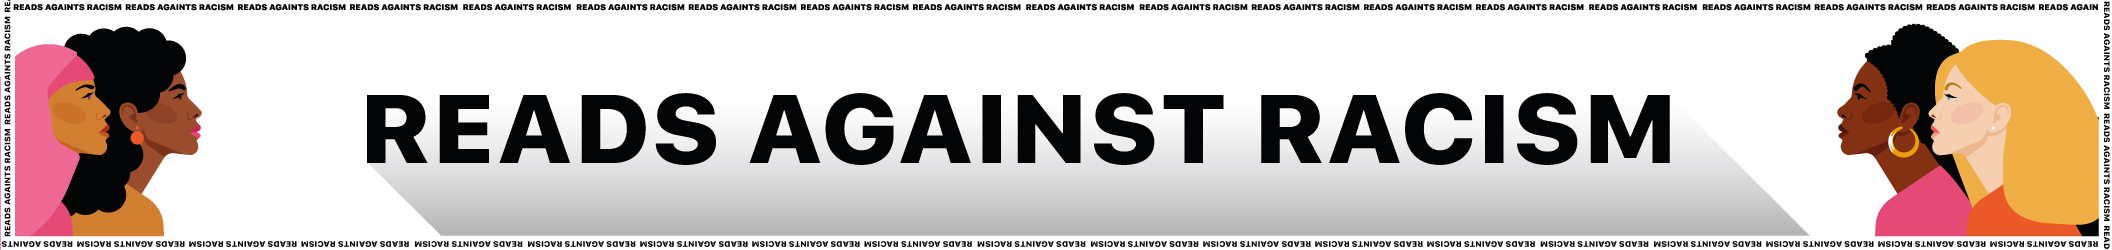 Reads Against Racism landing page banner 2112x200